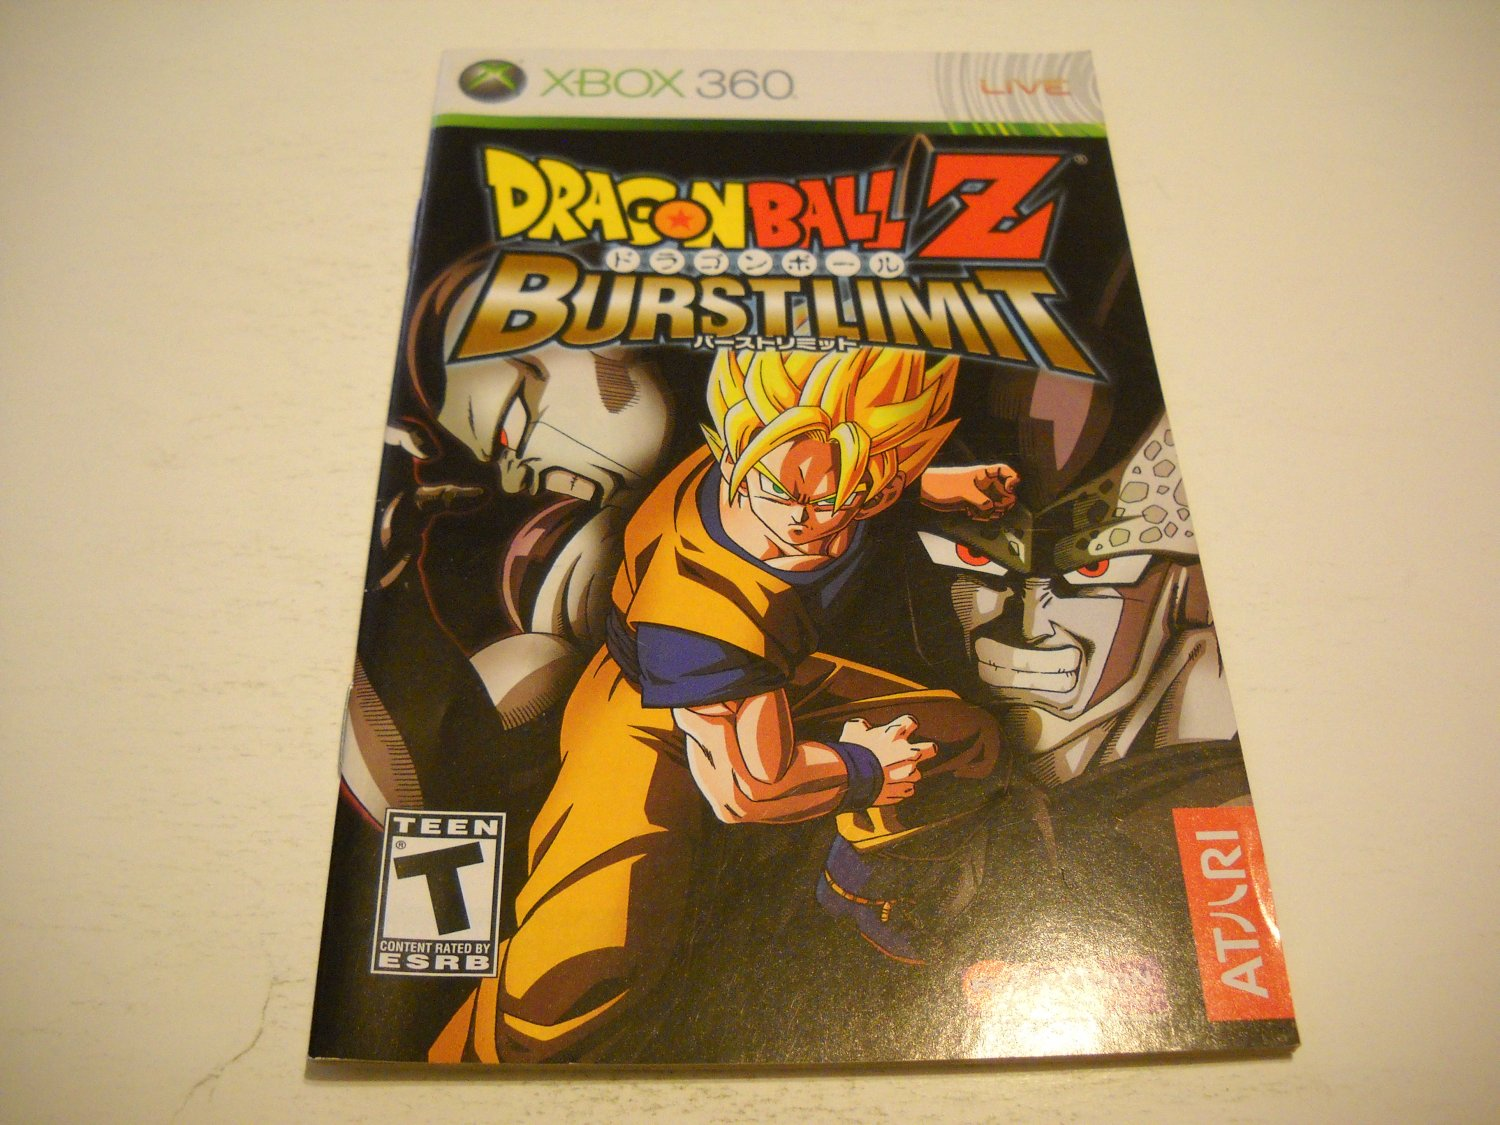 Manual ONLY ~  for Dragonball Z Burstlimit   - Xbox 360 Instruction Booklet